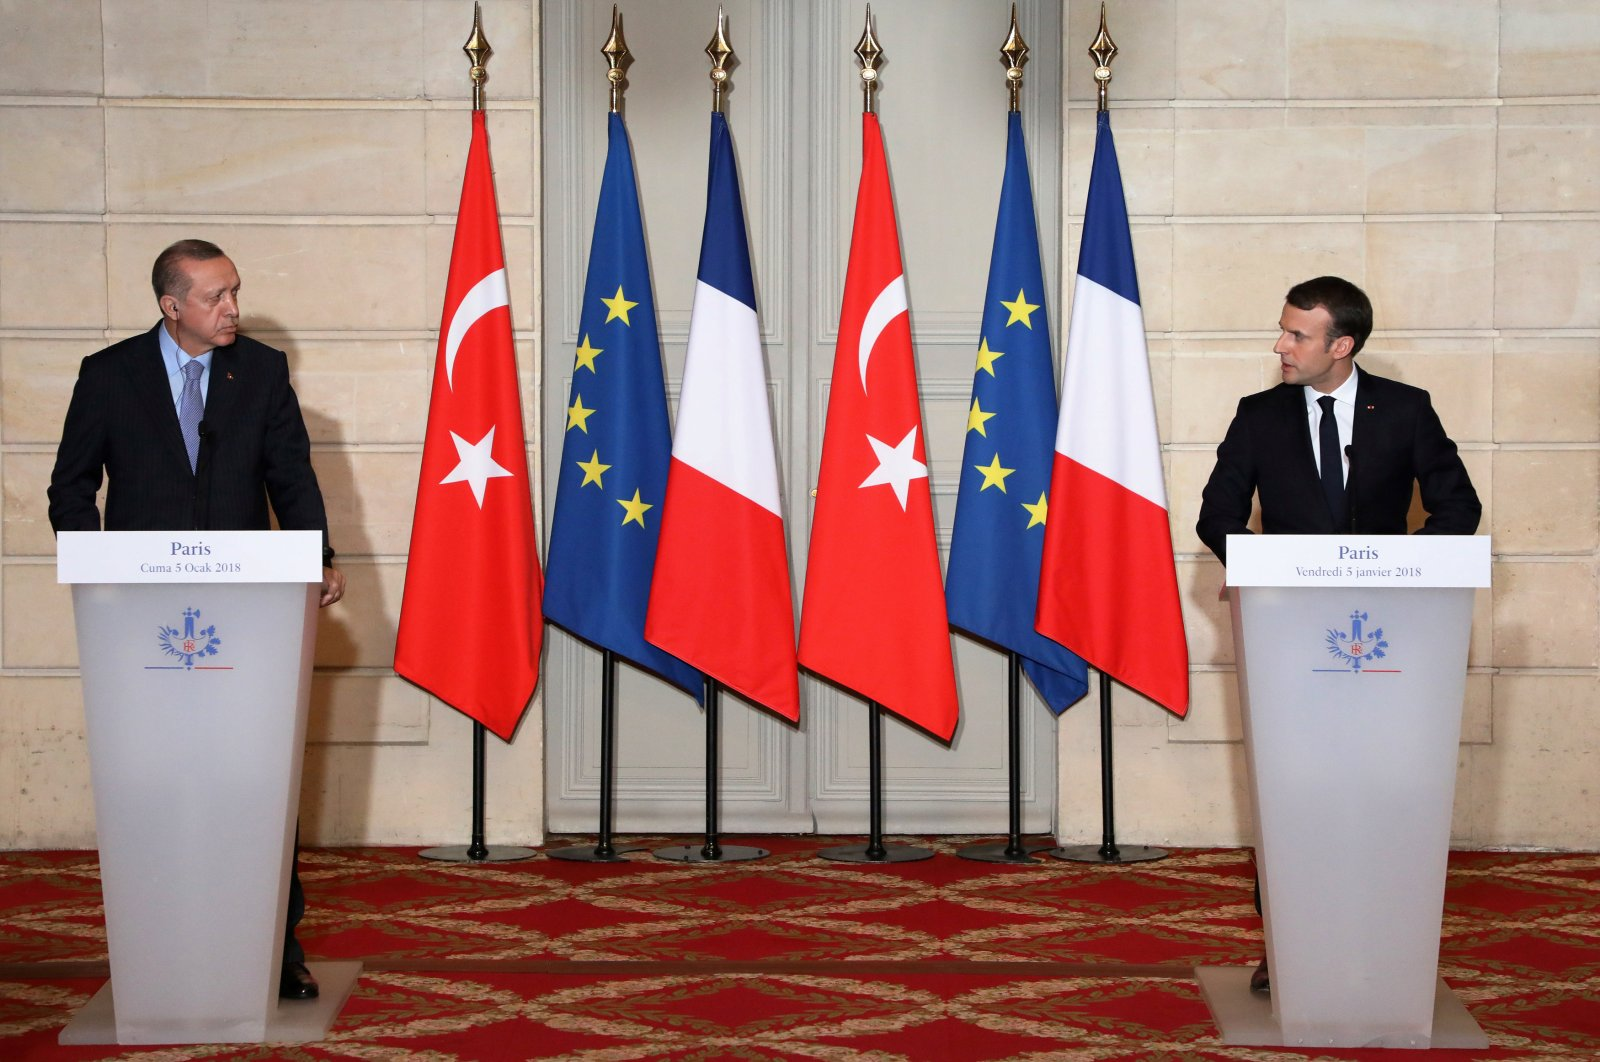 President Recep Tayyip Erdogan and French President Emmanuel Macron hold a joint press conference at the Elysee Palace in Paris, France, Jan. 5, 2018. (Reuters Photo)